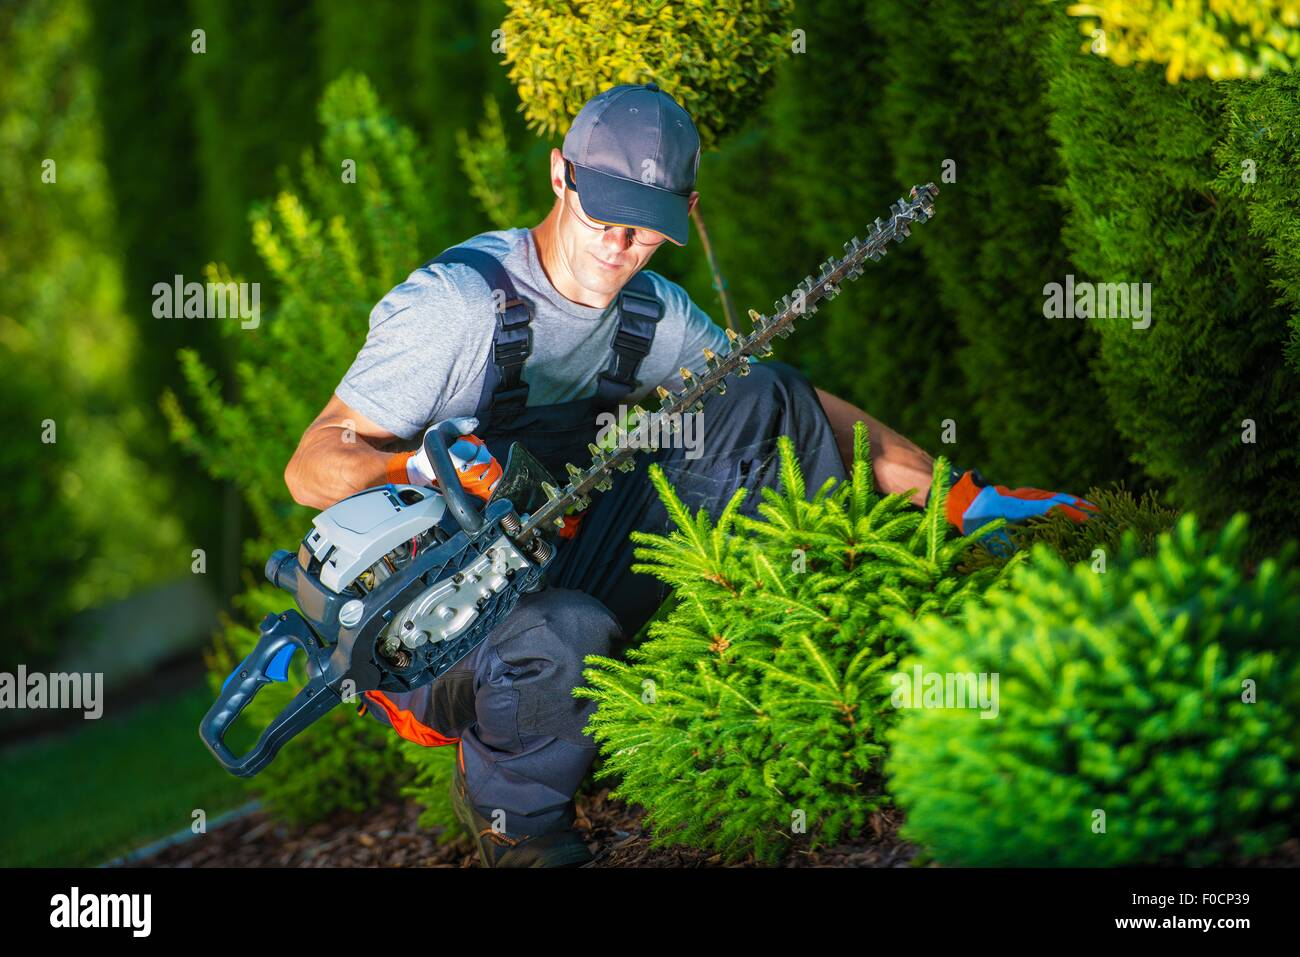 Trimming Works in a Garden. Professional Gardener with His Pro Garden Equipment During His Work. Gasoline Plants - Stock Image